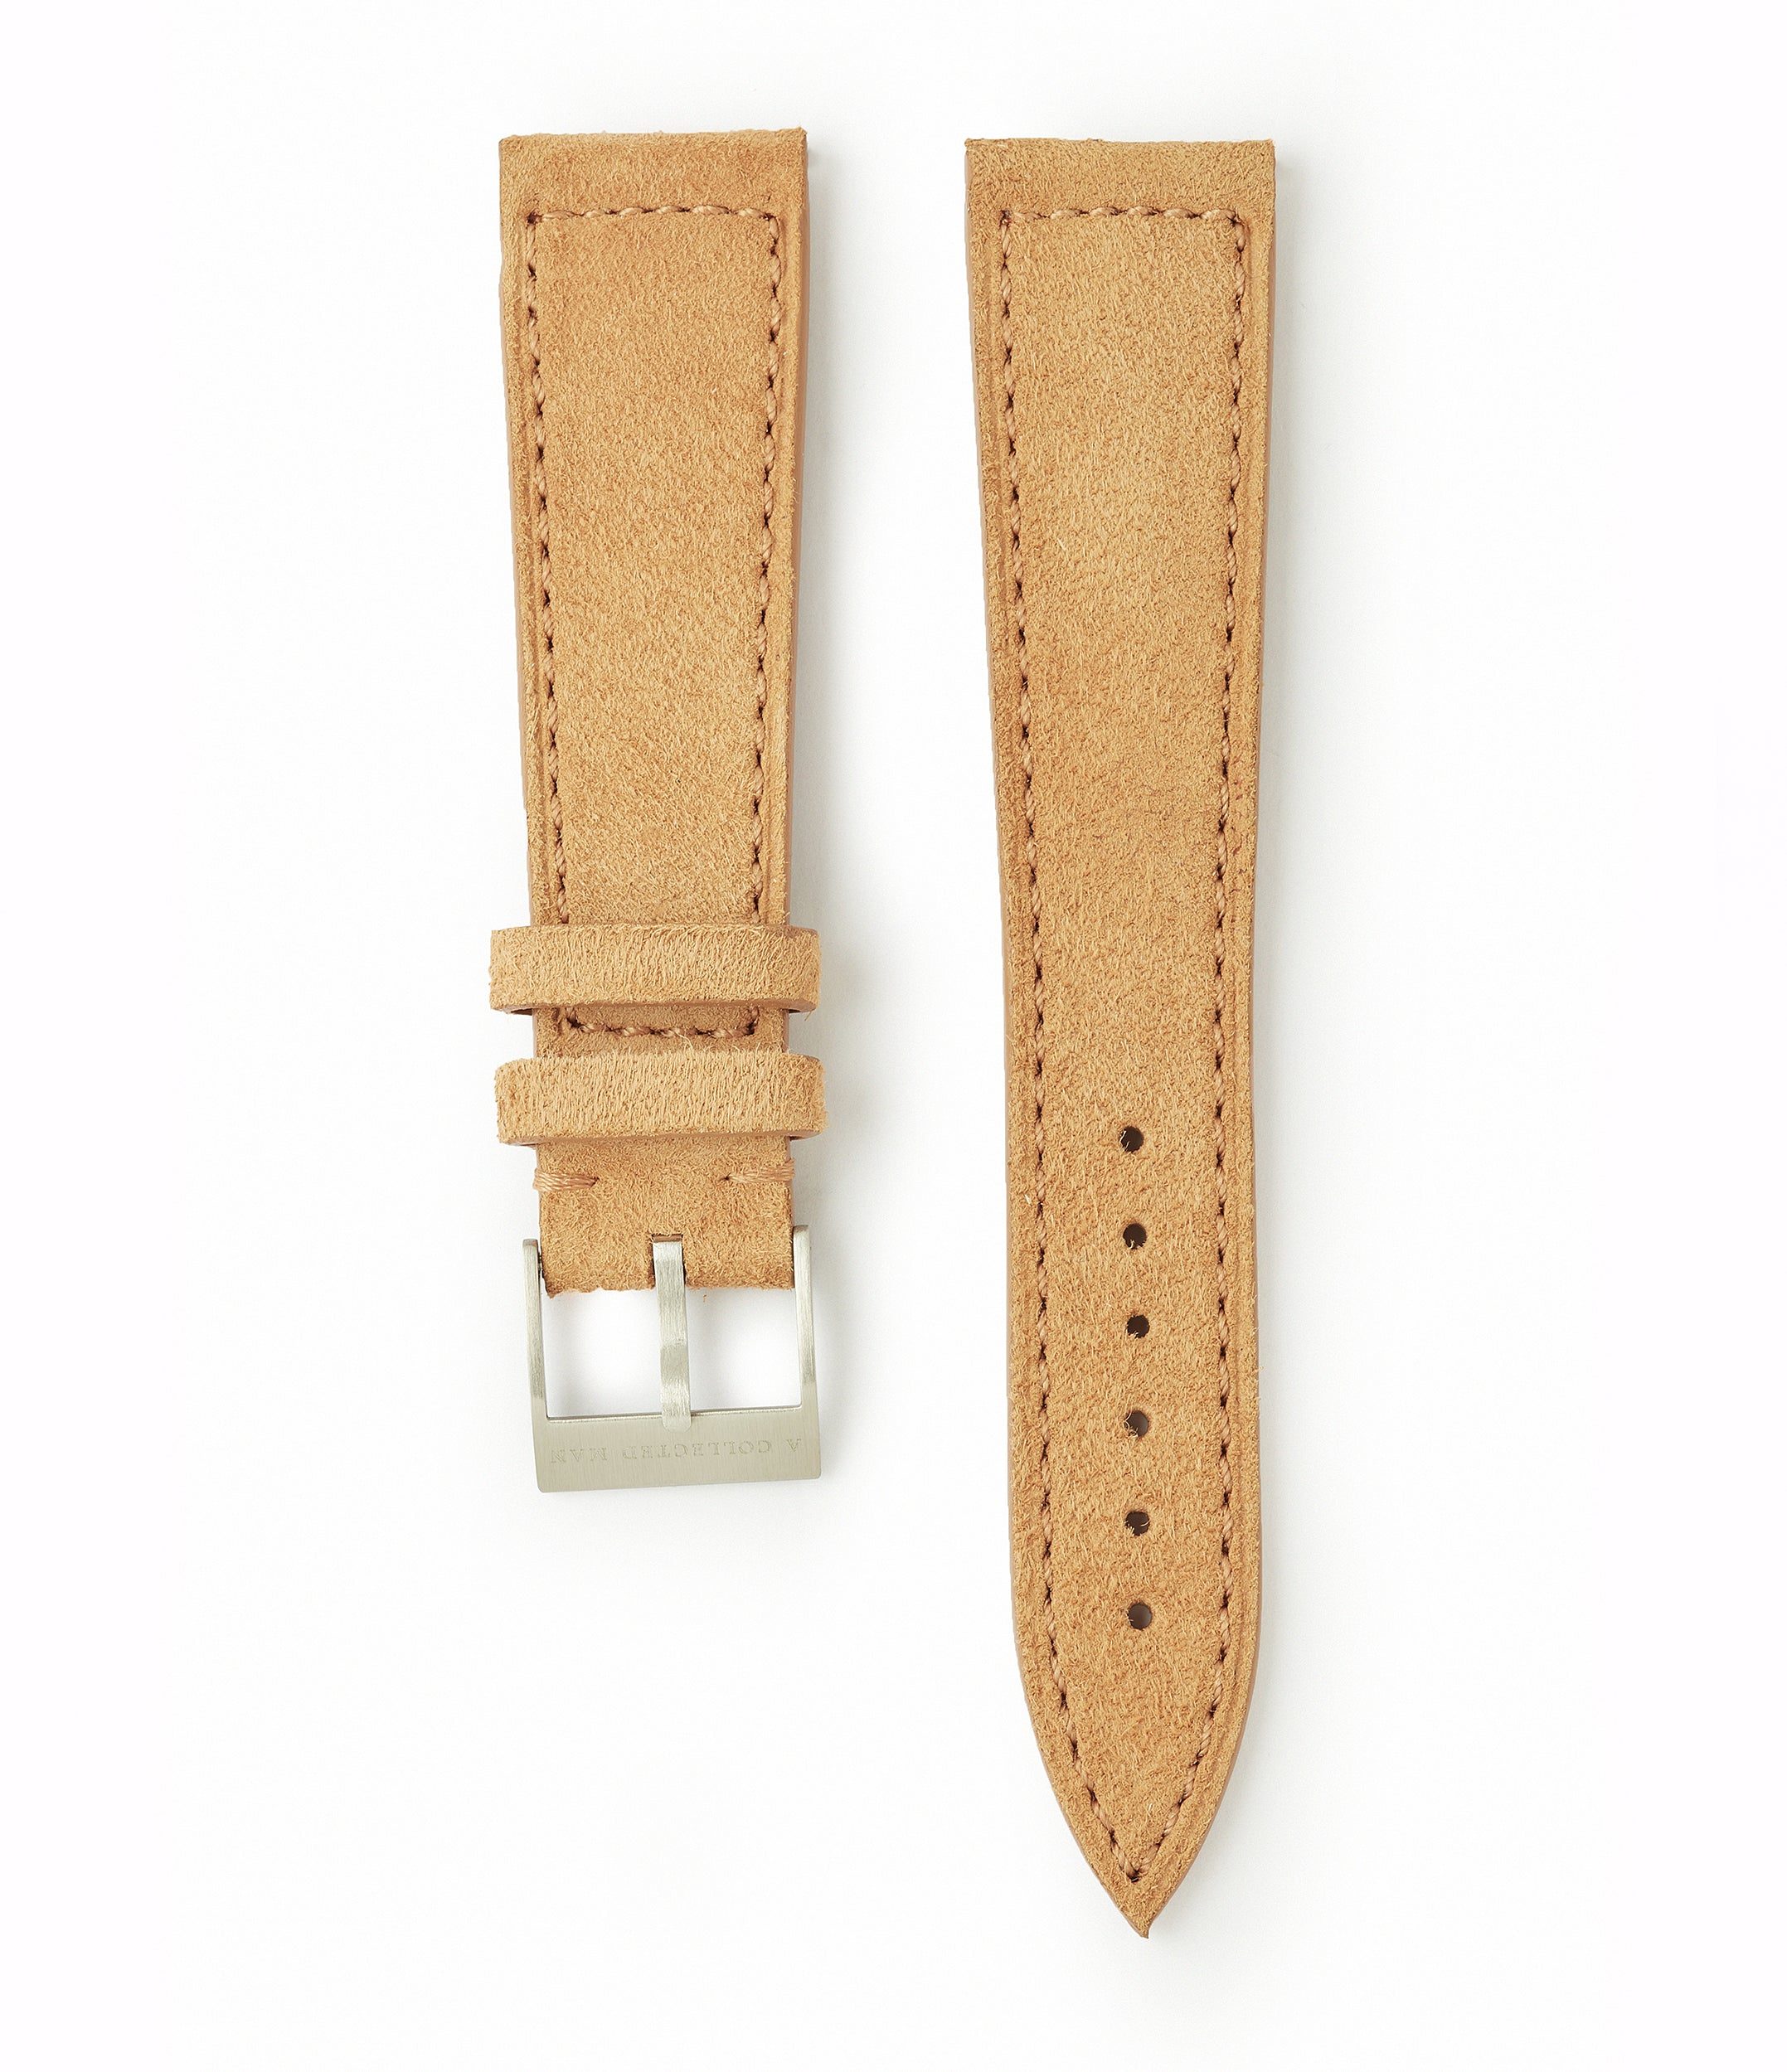 light tan suede boxed stitched Granada watch strap 19mm lug width order online at A Collected Man London